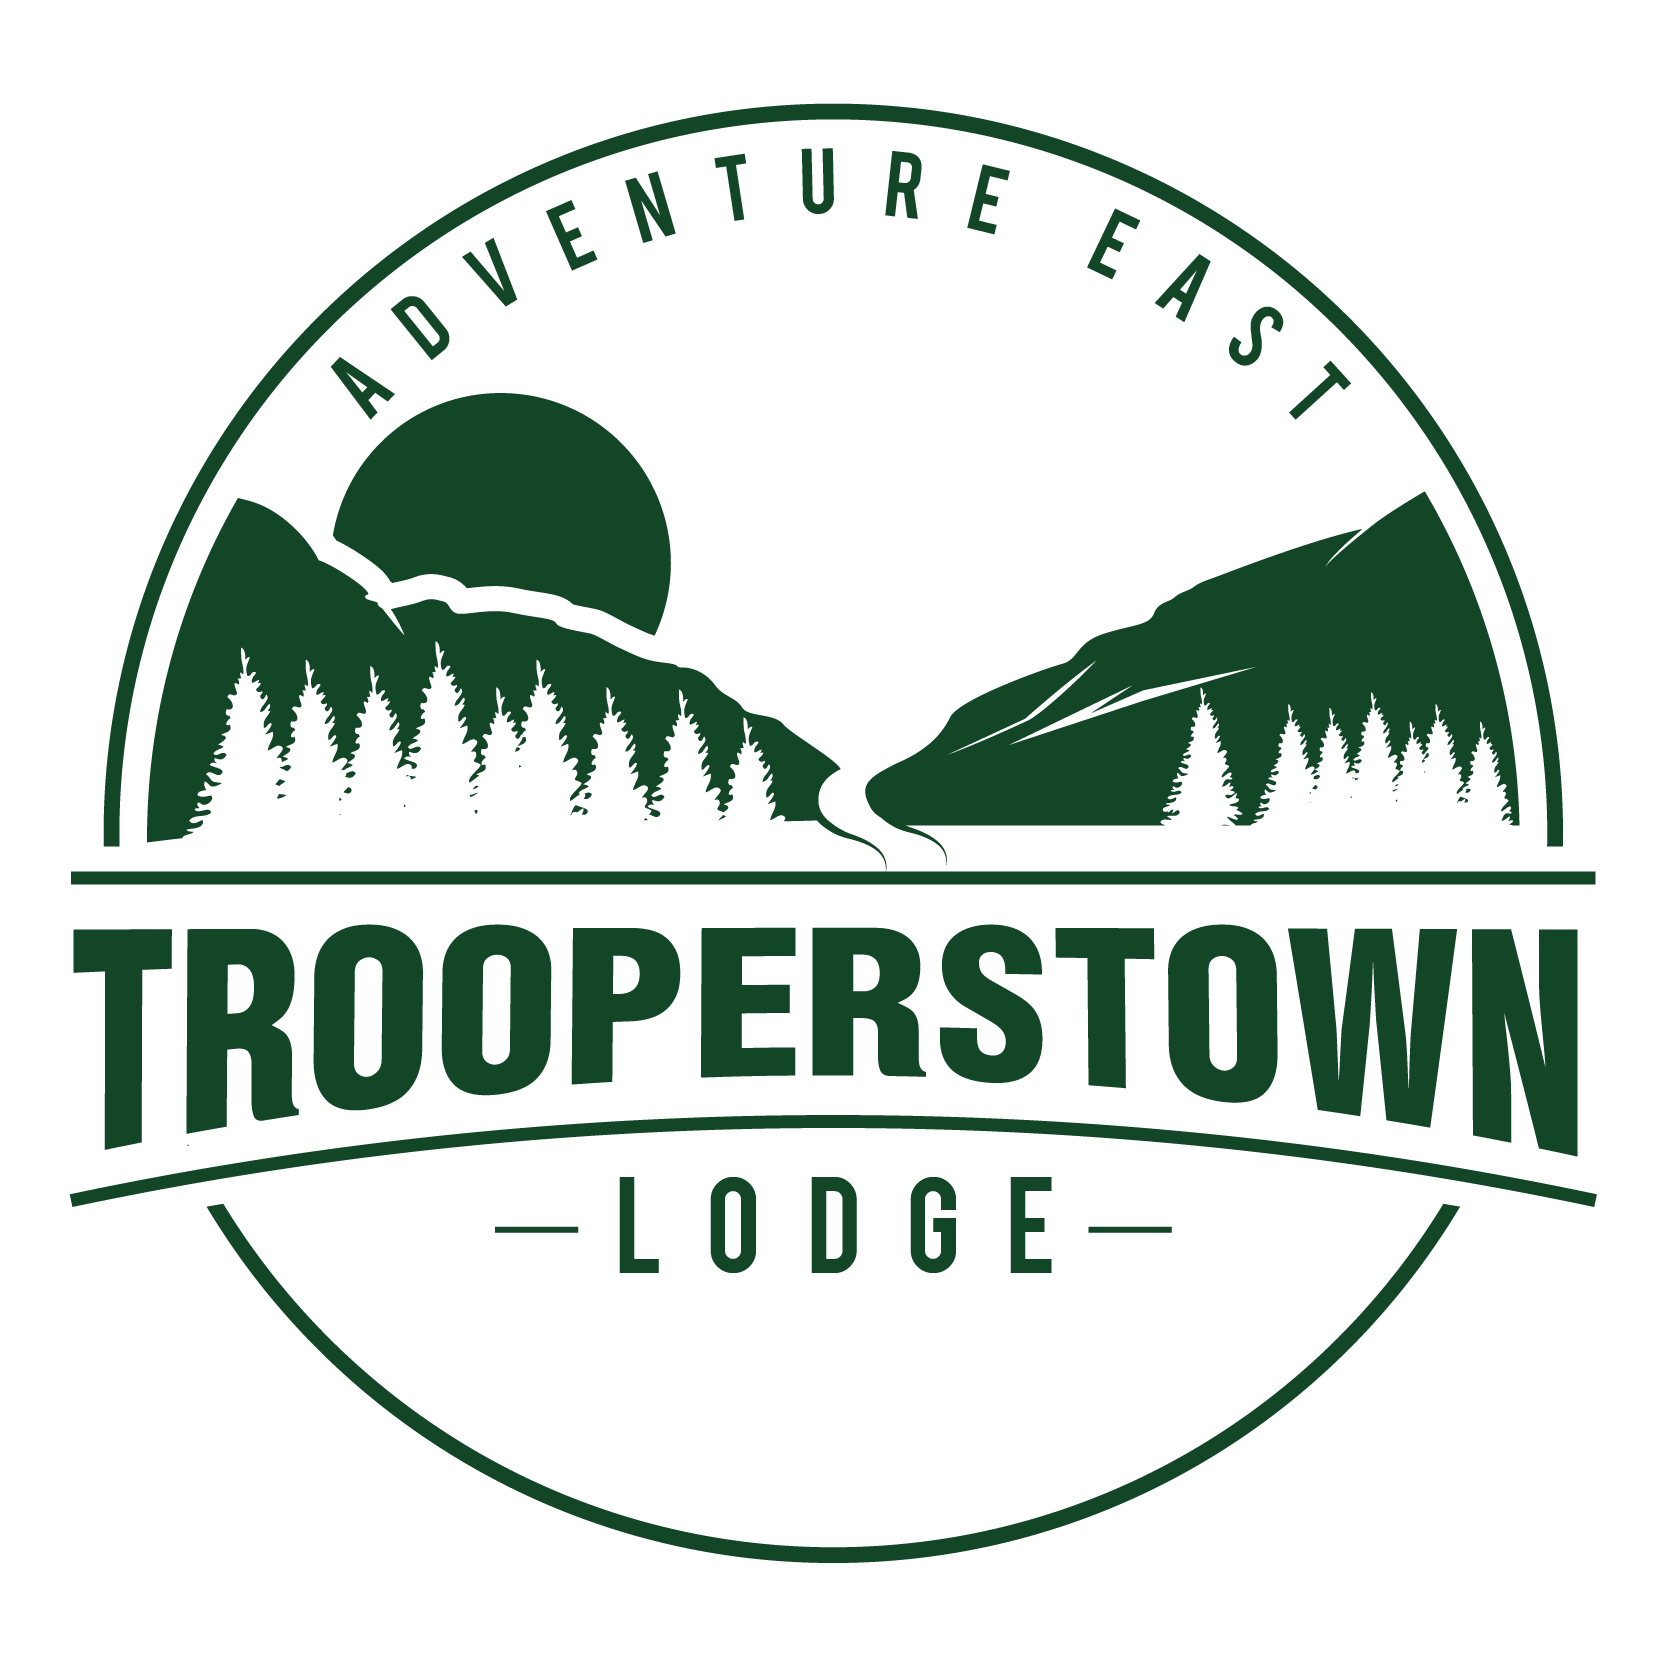 Trooperstown Lodge